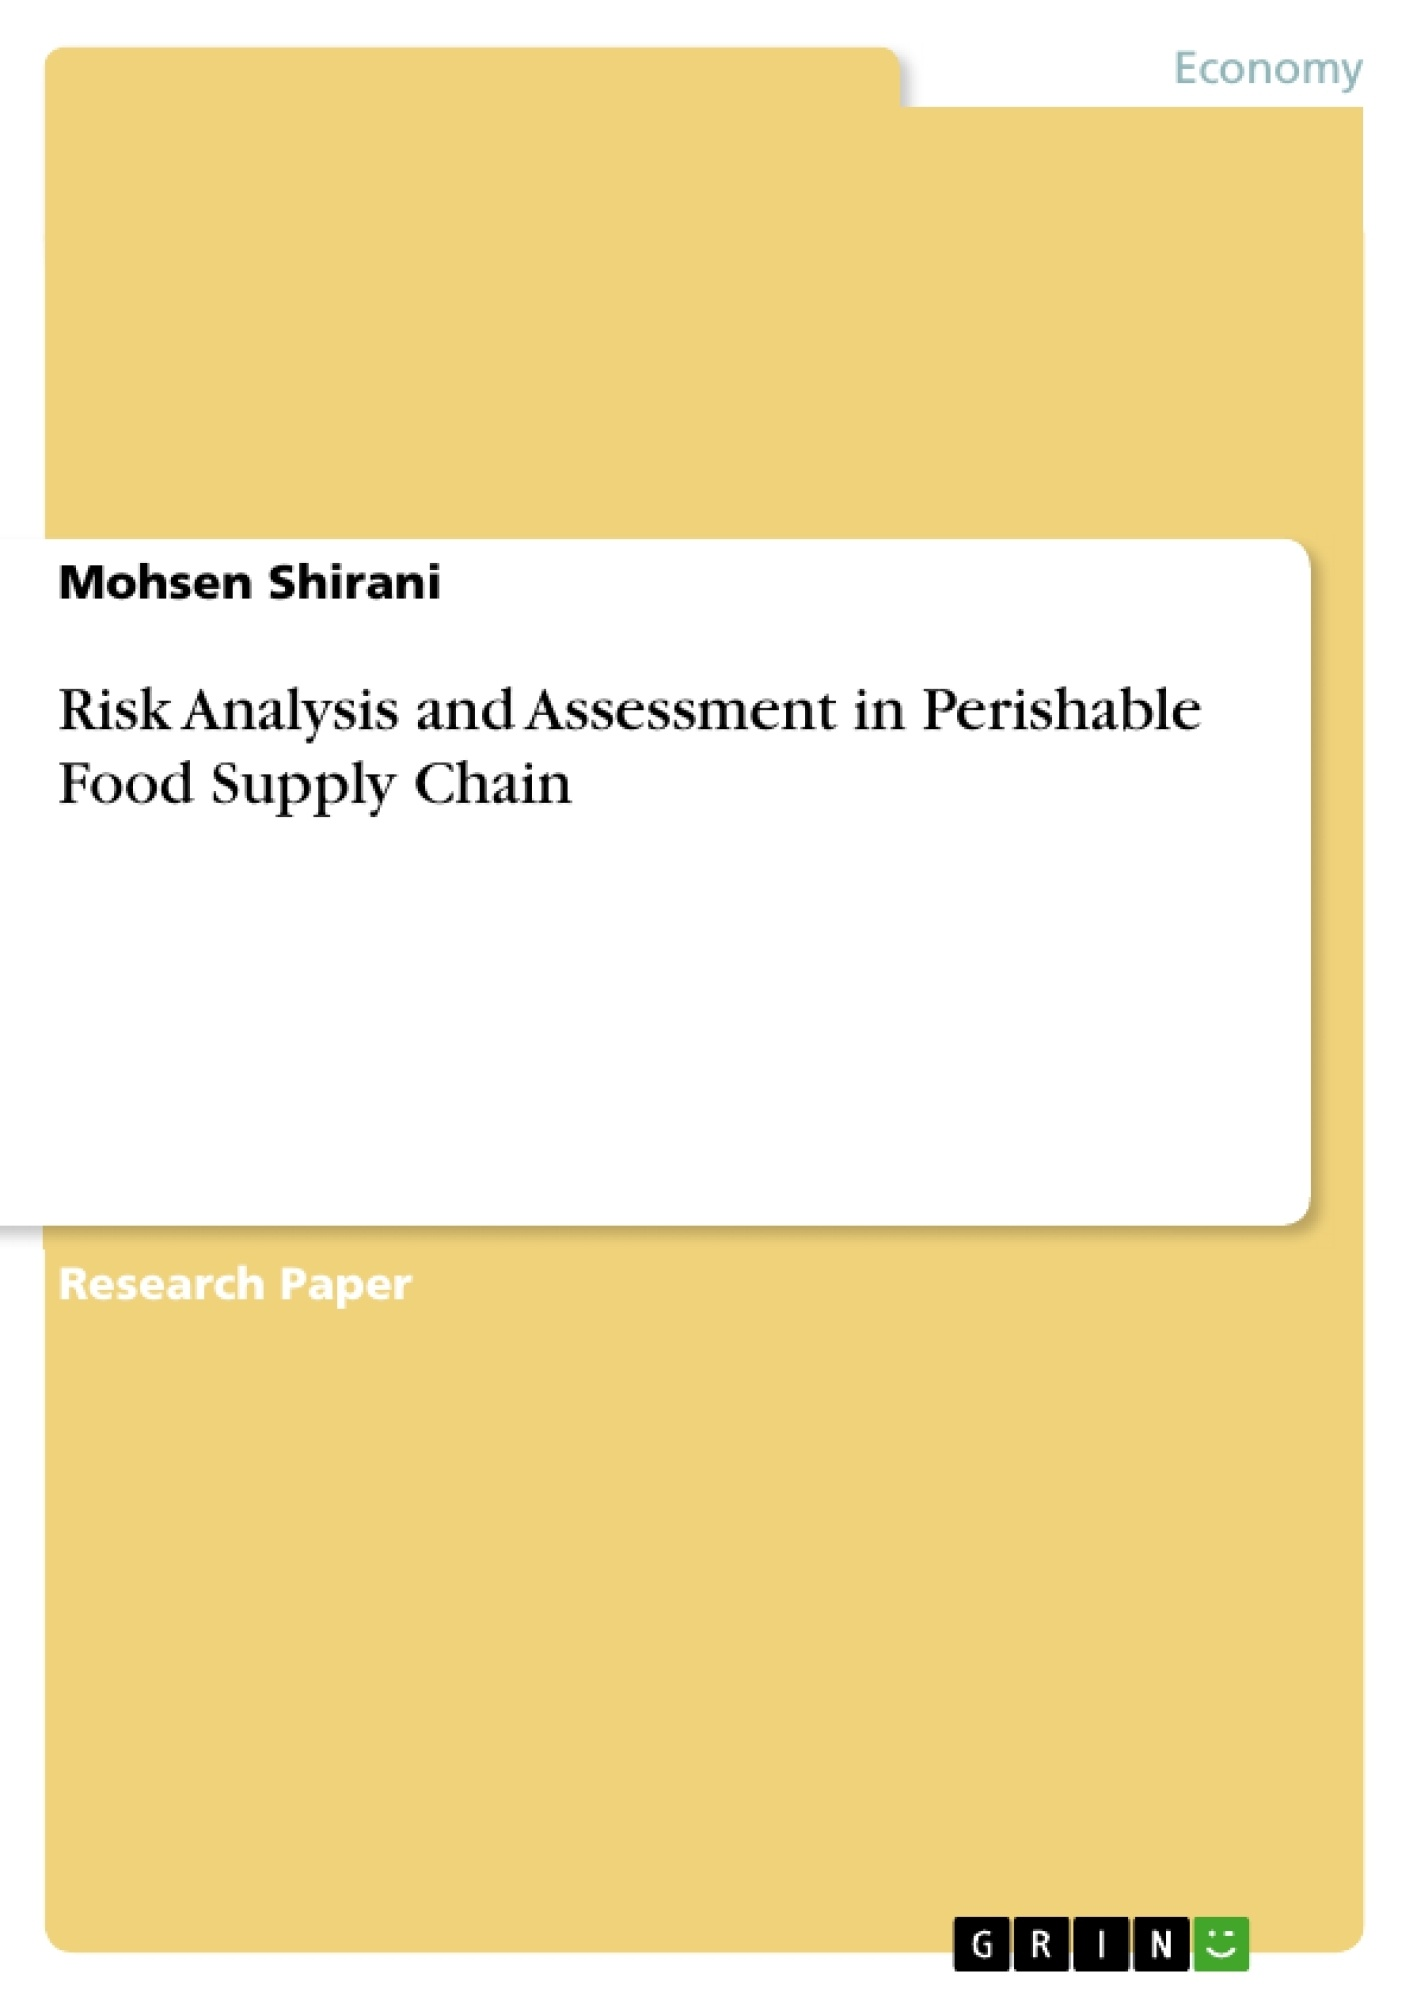 Title: Risk Analysis and Assessment  in  Perishable Food Supply Chain